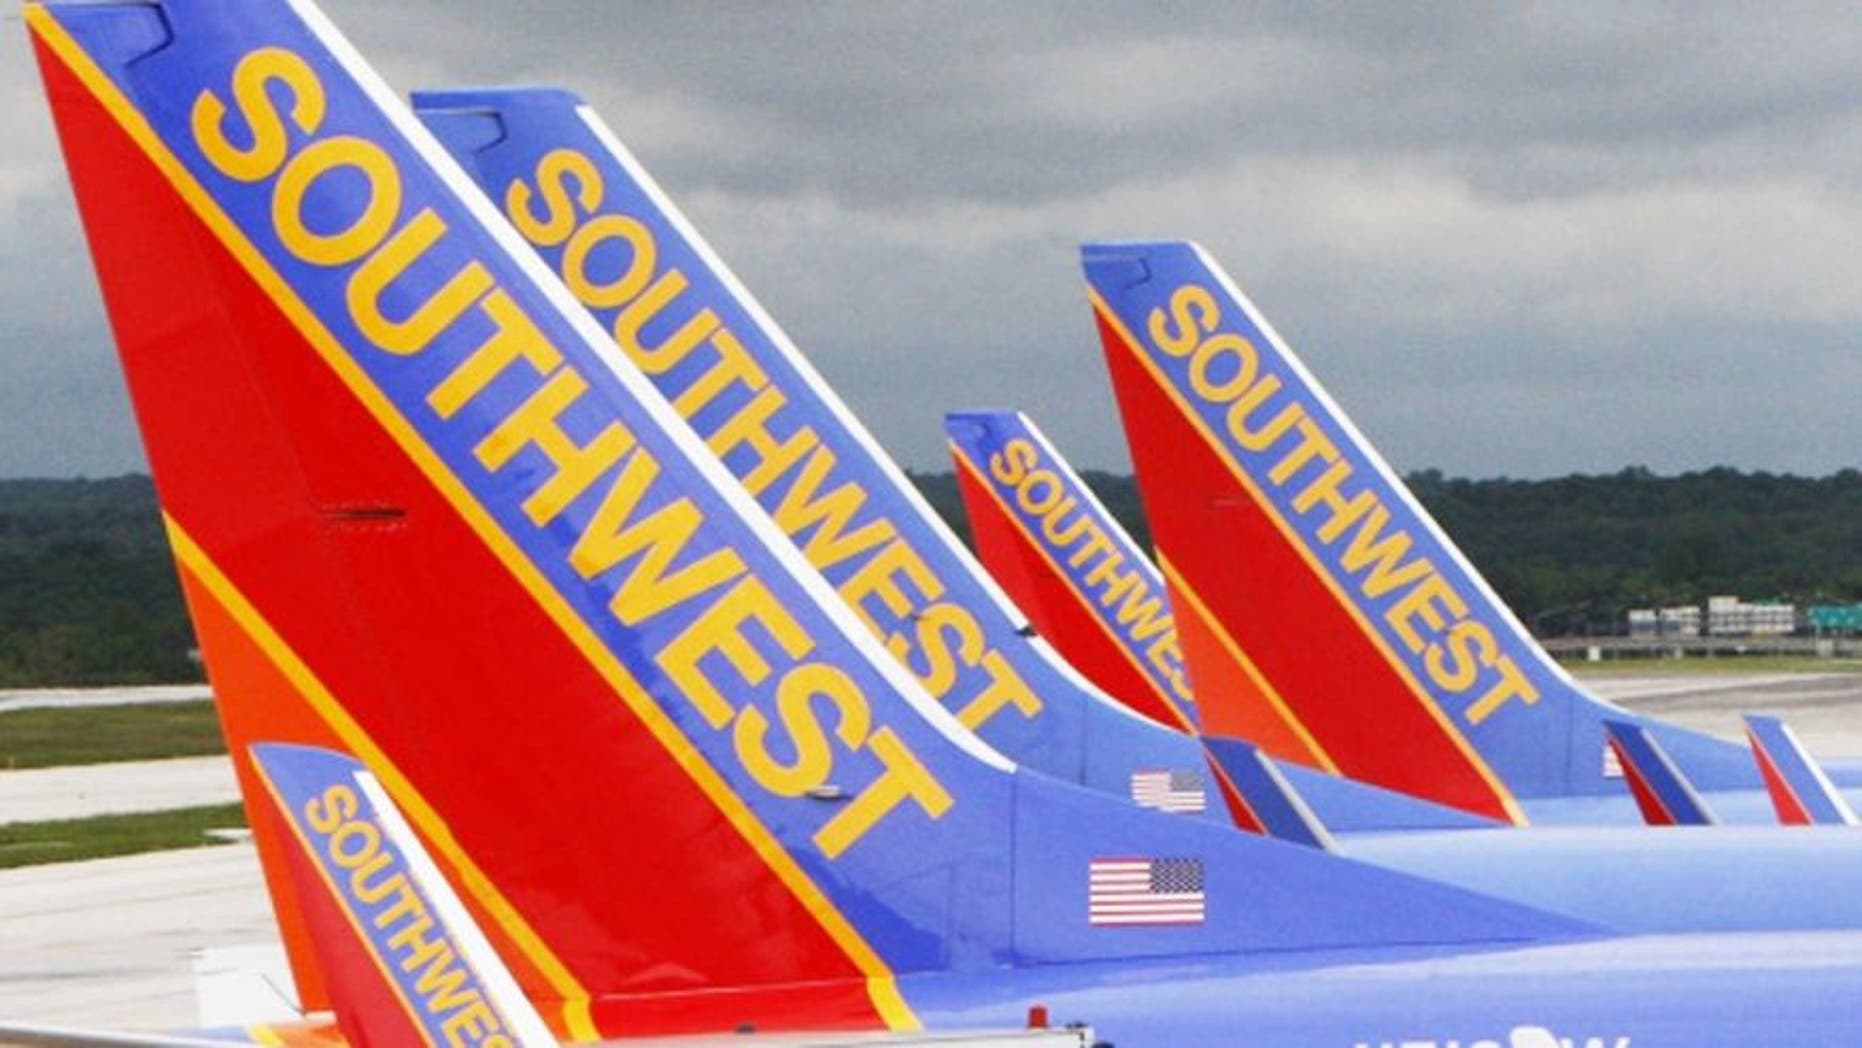 A Southwest Airlines pilot was arrested on a weapons charge in New York Monday after airport security officers discovered a loaded handgun in his carry-on bag.